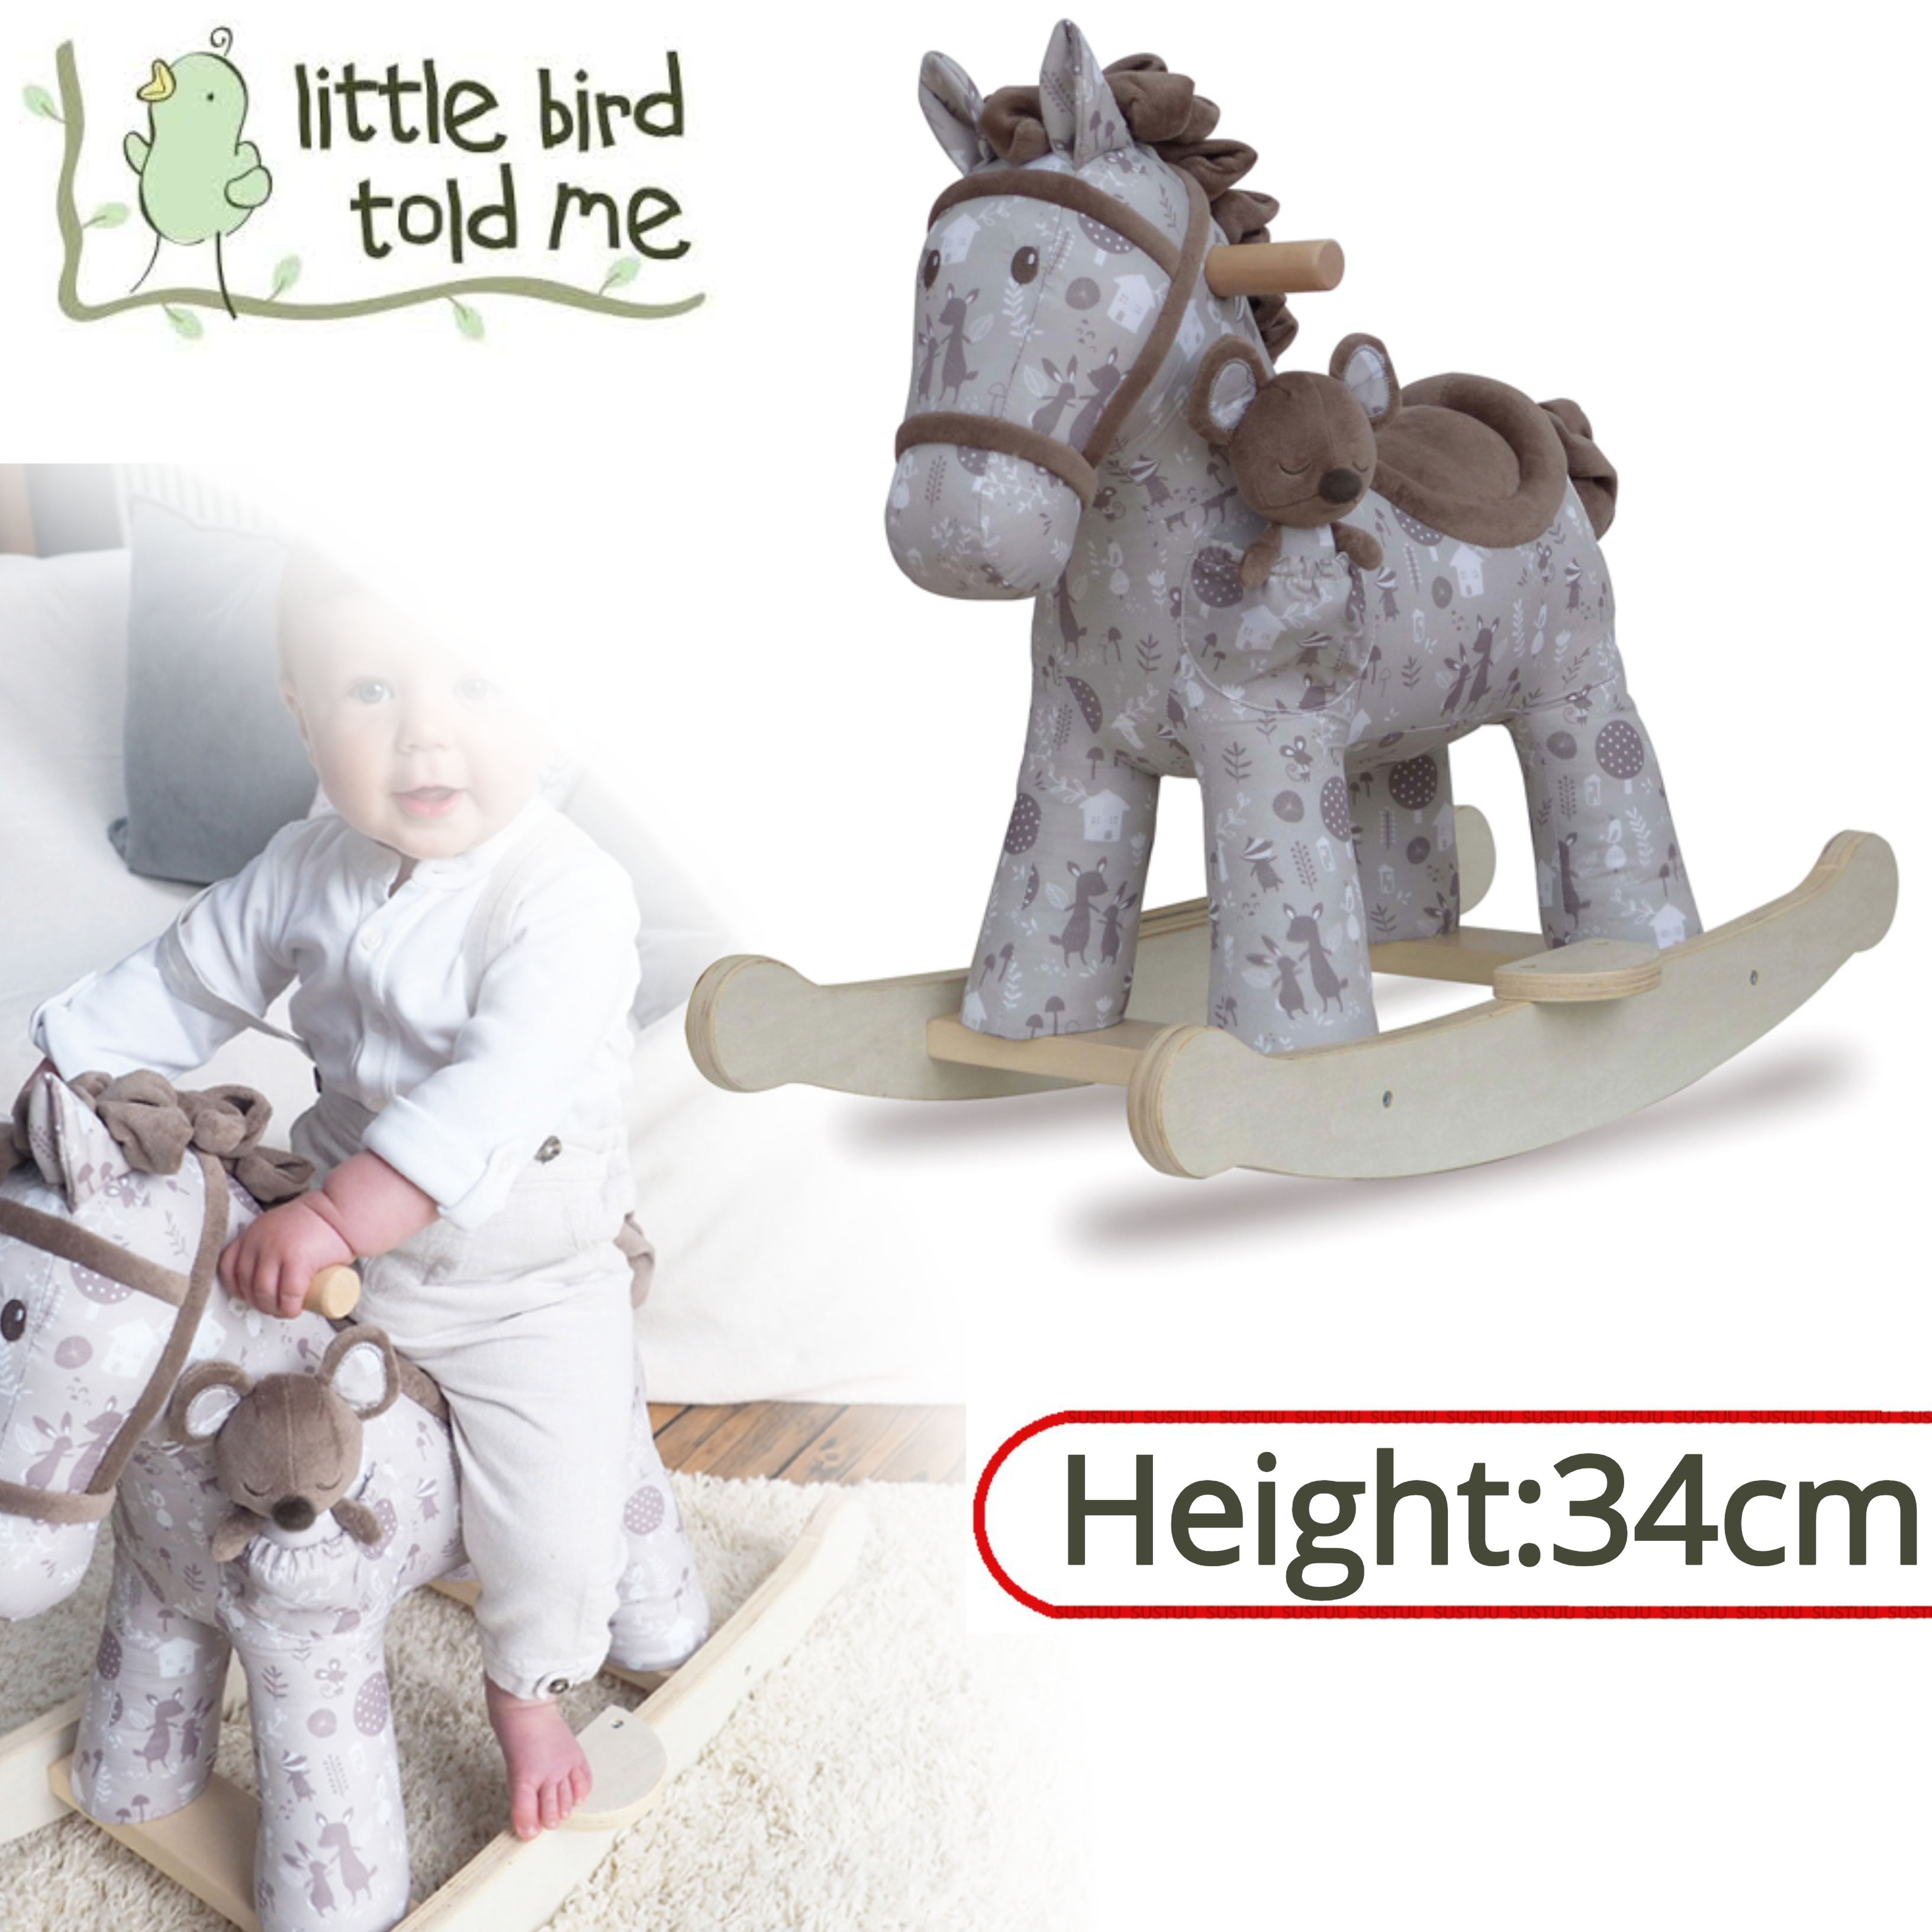 Little Bird Told Me Biscuit & Skip Rocking Horse Toy 9m+   Ride On   With Soft Fabric